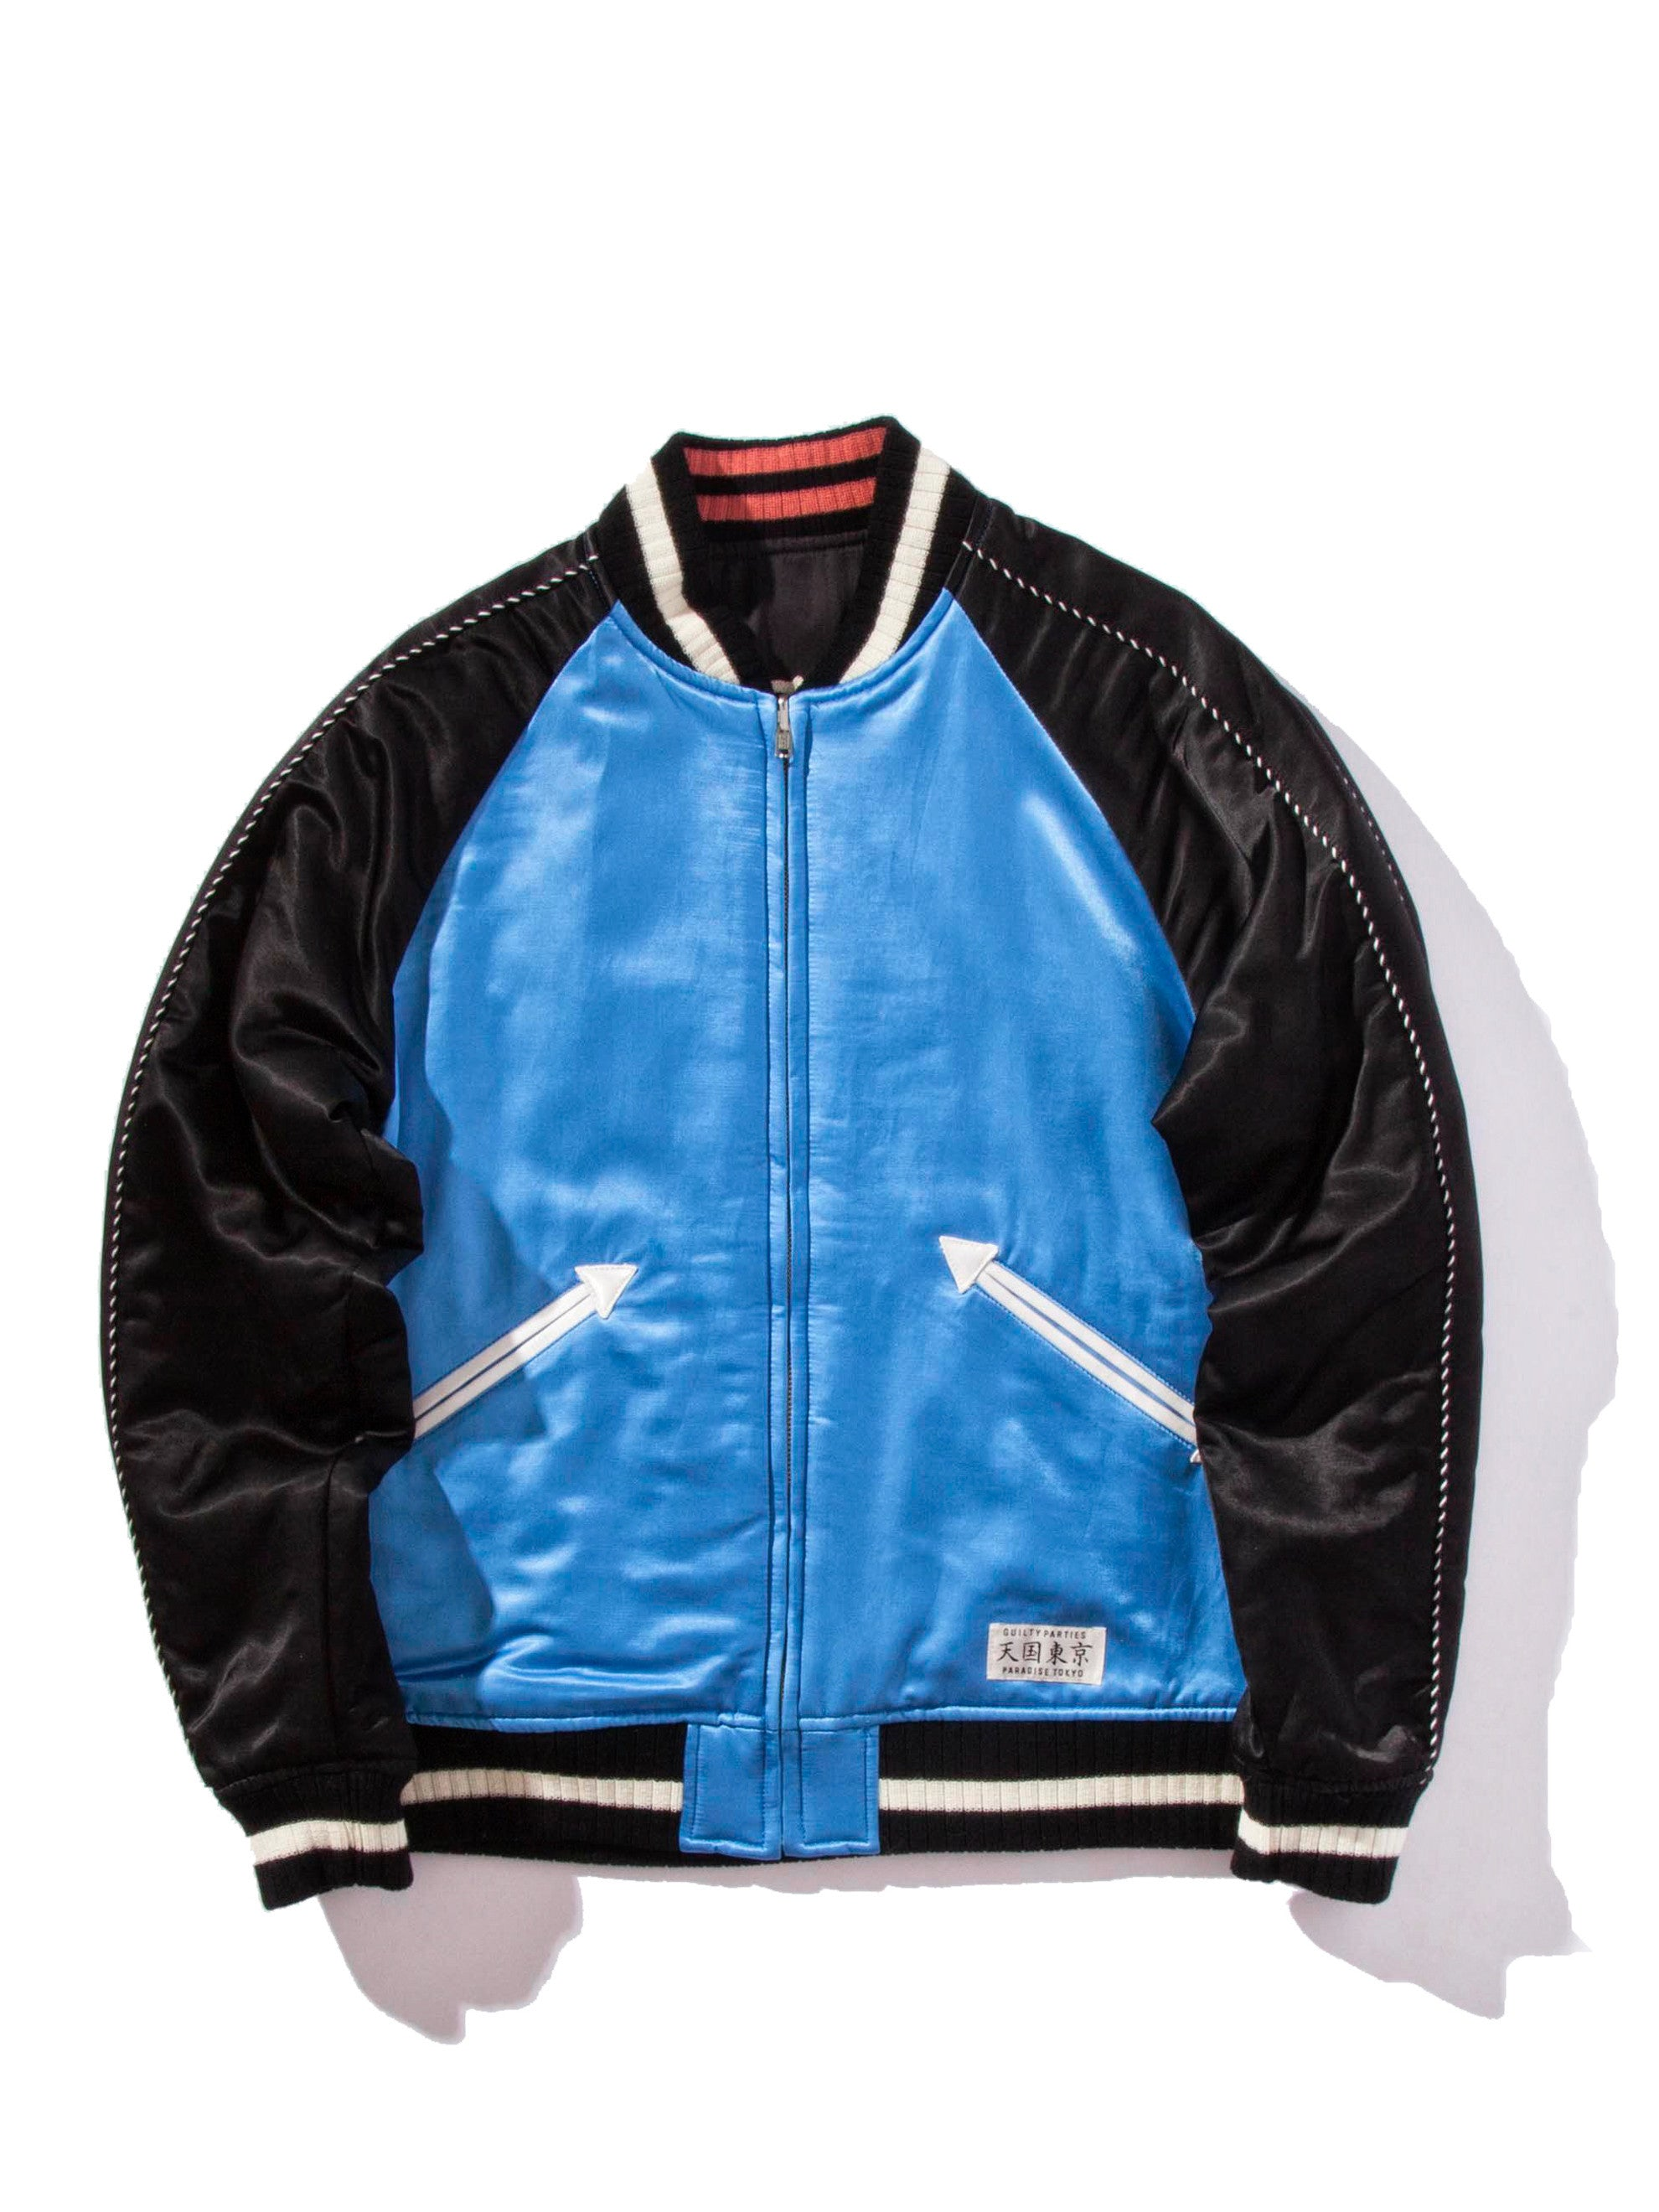 Blue/Black Souvenior Jacket 9